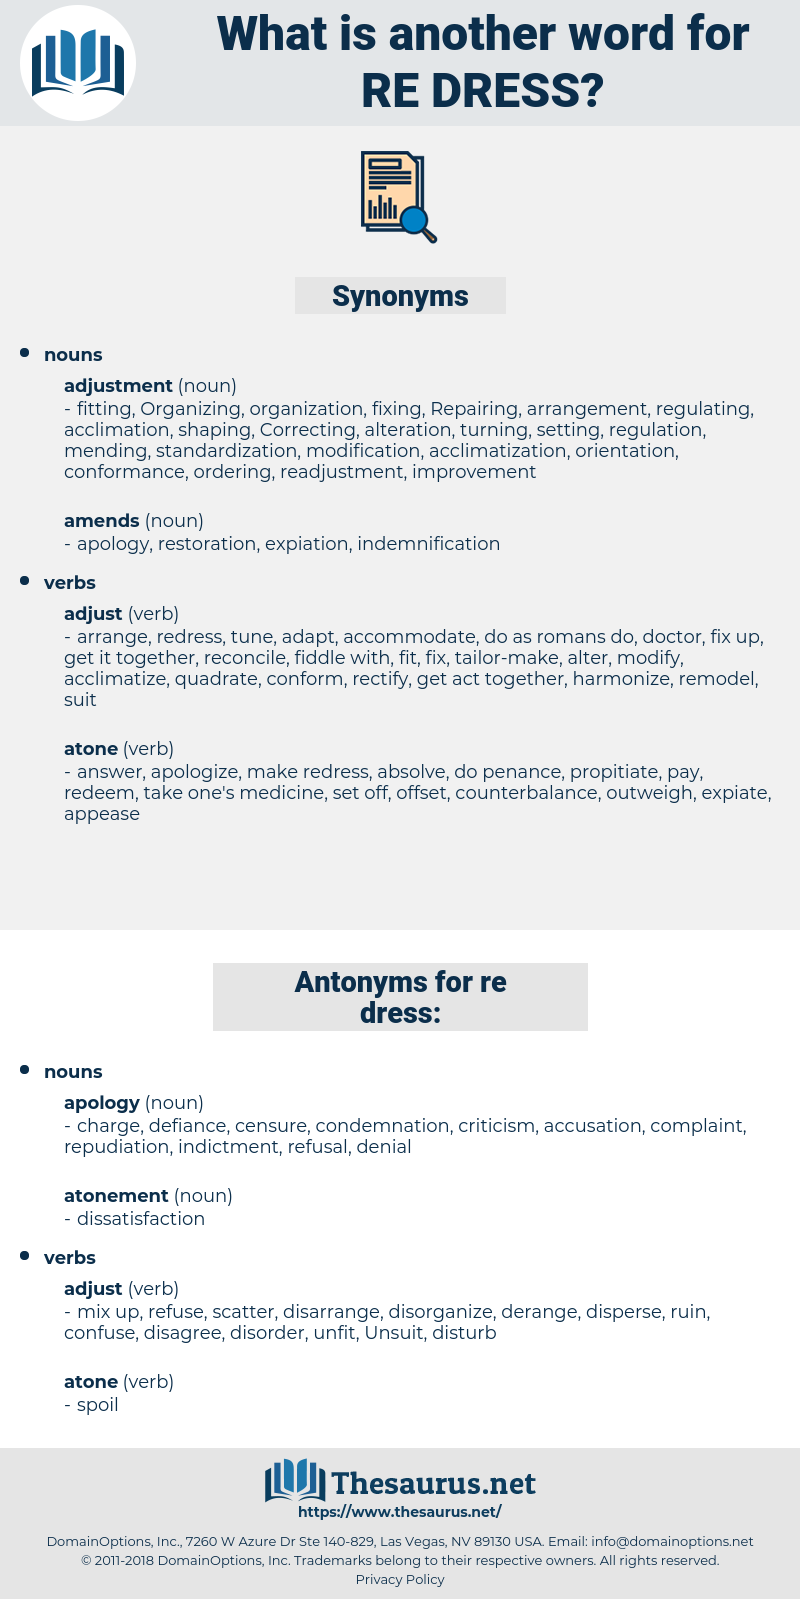 re-dress, synonym re-dress, another word for re-dress, words like re-dress, thesaurus re-dress